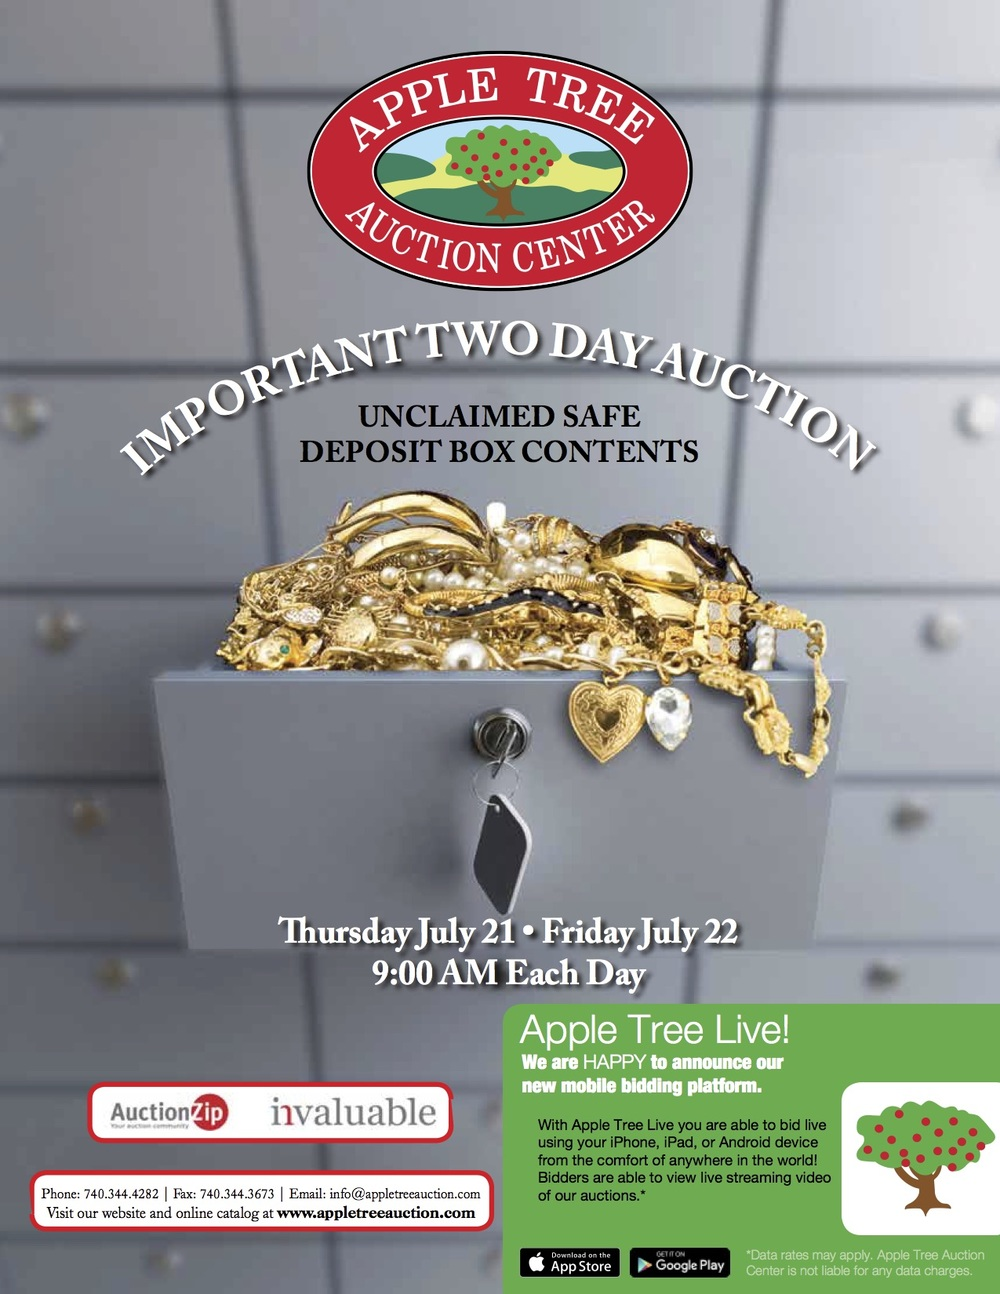 July Safe Deposit Box Flyer 16 low res pg 1.jpg